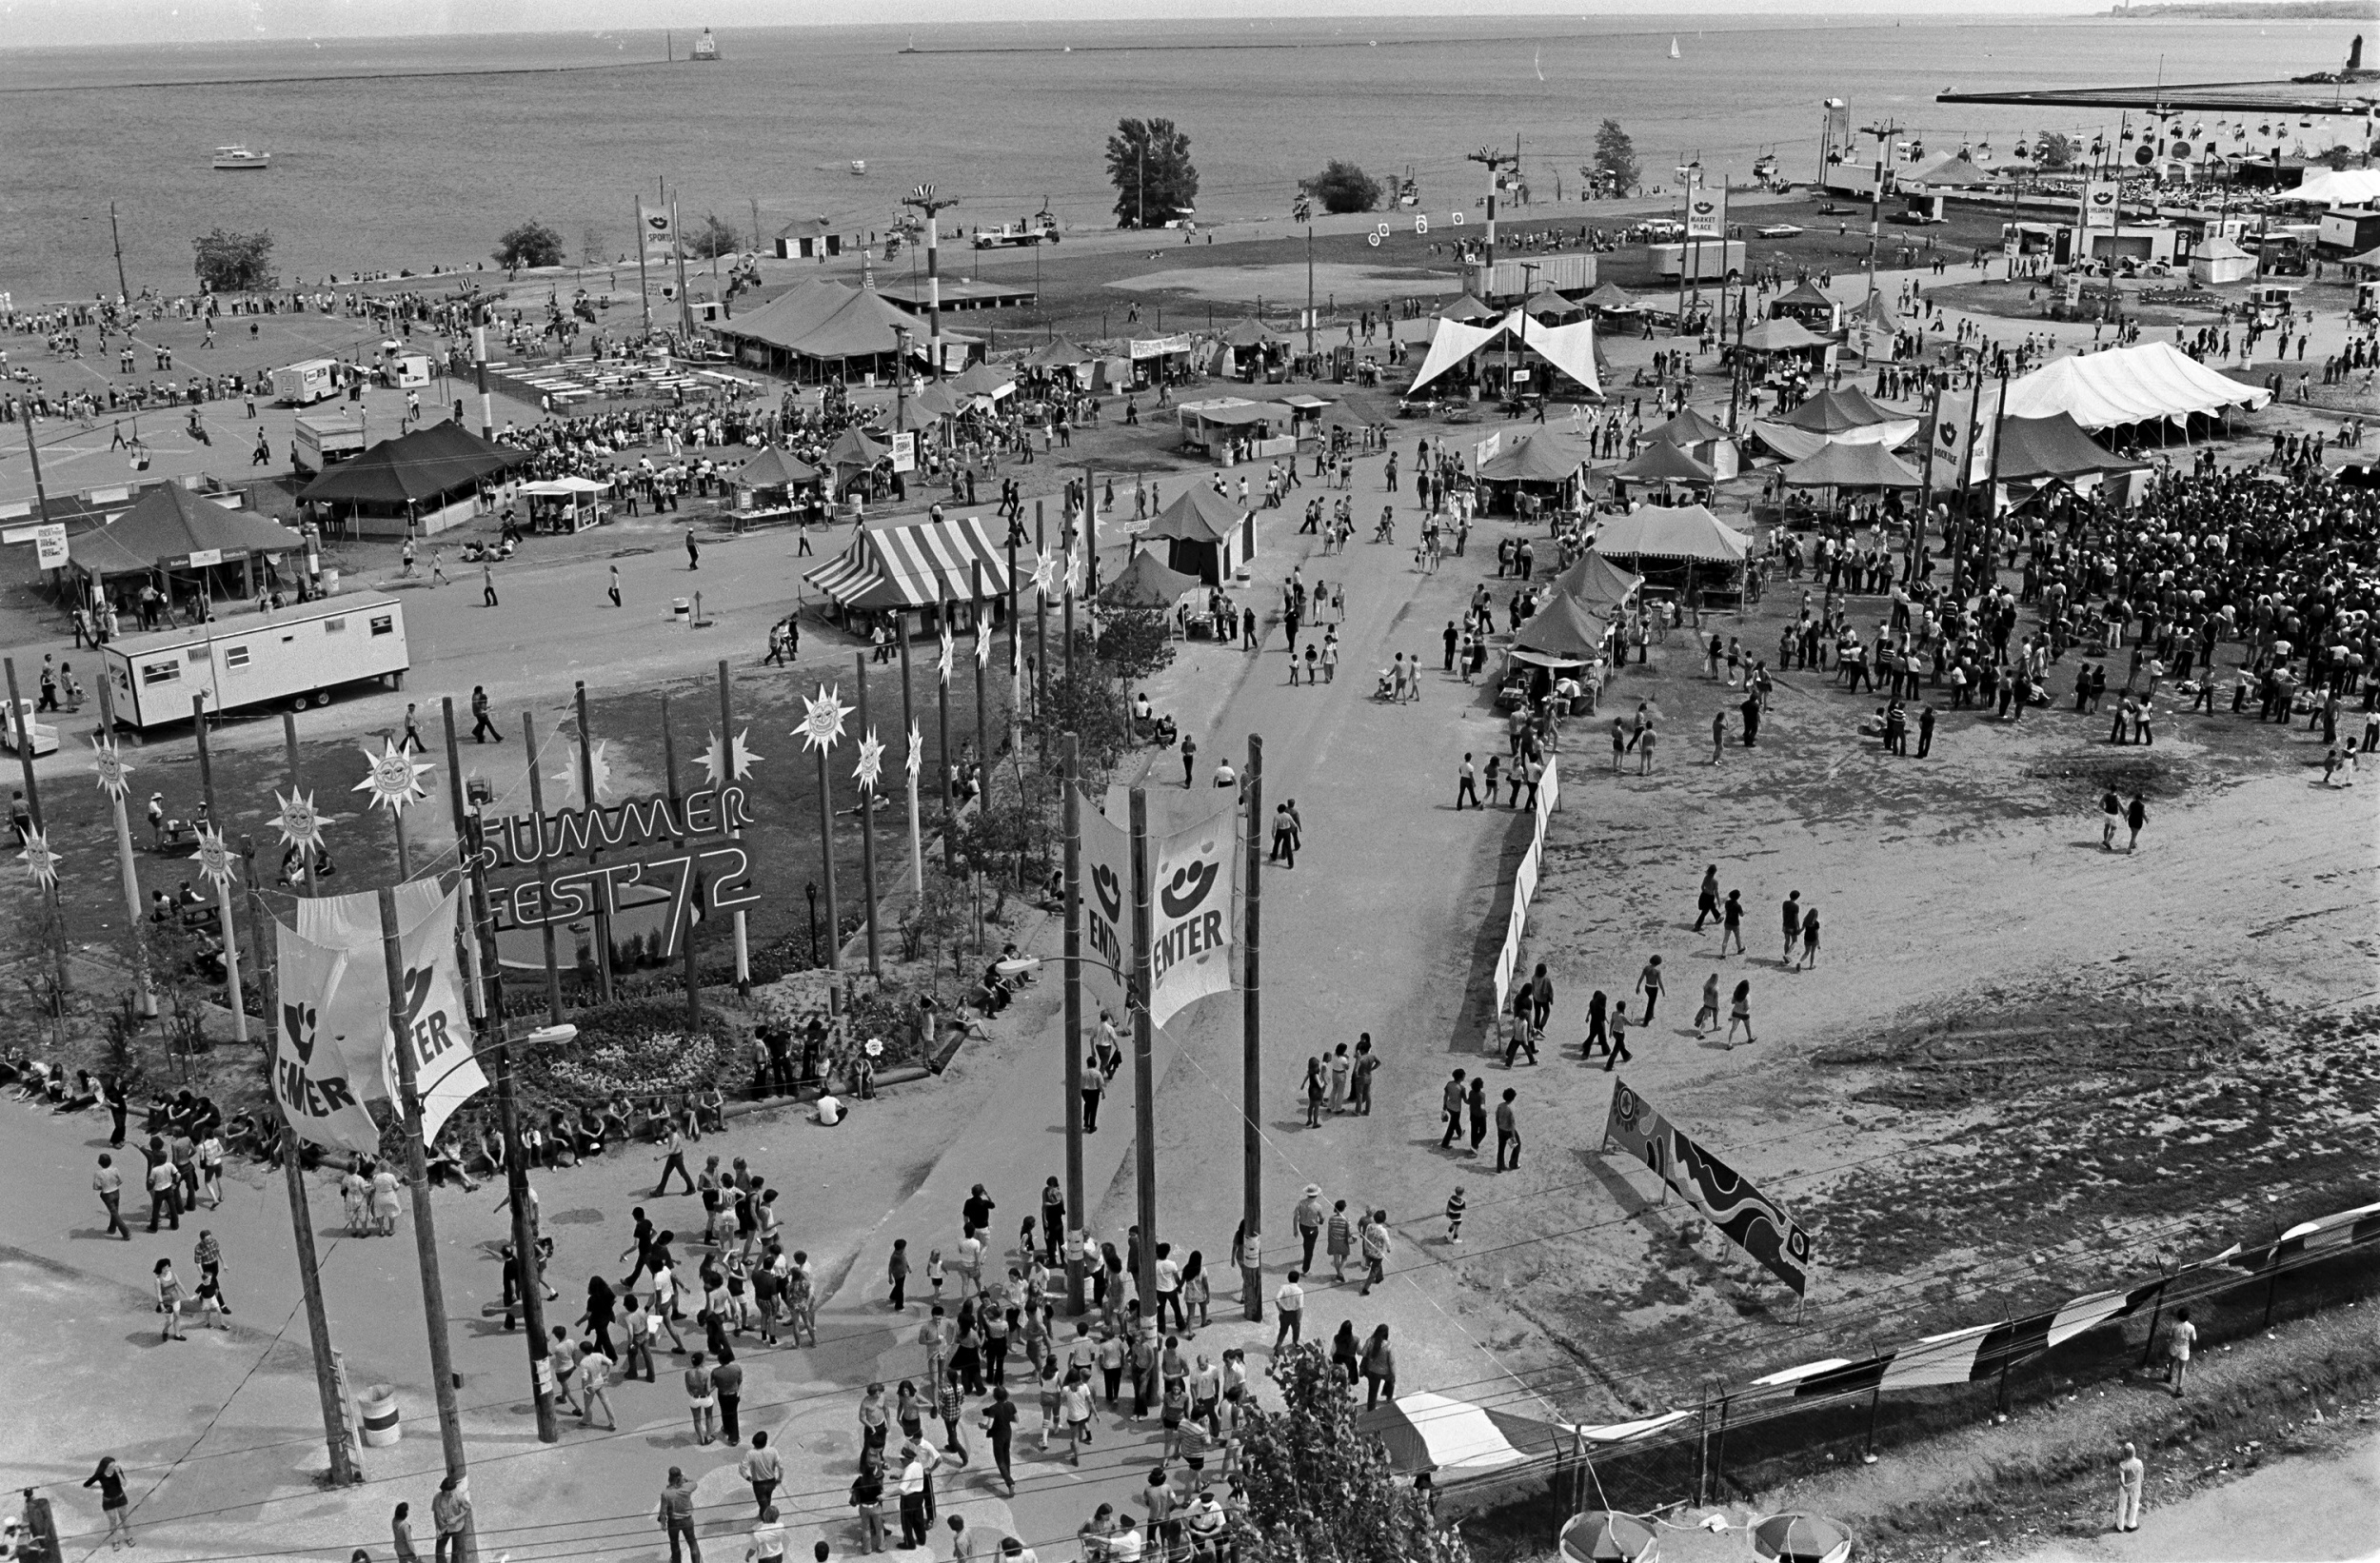 <table class=&quot;lightbox&quot;><tr><td colspan=2 class=&quot;lightbox-title&quot;>View of an Early Summerfest</td></tr><tr><td colspan=2 class=&quot;lightbox-caption&quot;>This photograph shows the Summerfest grounds as seen from on top the double ferris wheel at the midway, taken in 1972. </td></tr><tr><td colspan=2 class=&quot;lightbox-spacer&quot;></td></tr><tr class=&quot;lightbox-detail&quot;><td class=&quot;cell-title&quot;>Source: </td><td class=&quot;cell-value&quot;>Photograph by Alan Magayne-Roshak. Copyright 2013. Reprinted with permission. </td></tr><tr class=&quot;filler-row&quot;><td colspan=2>&nbsp;</td></tr></table>